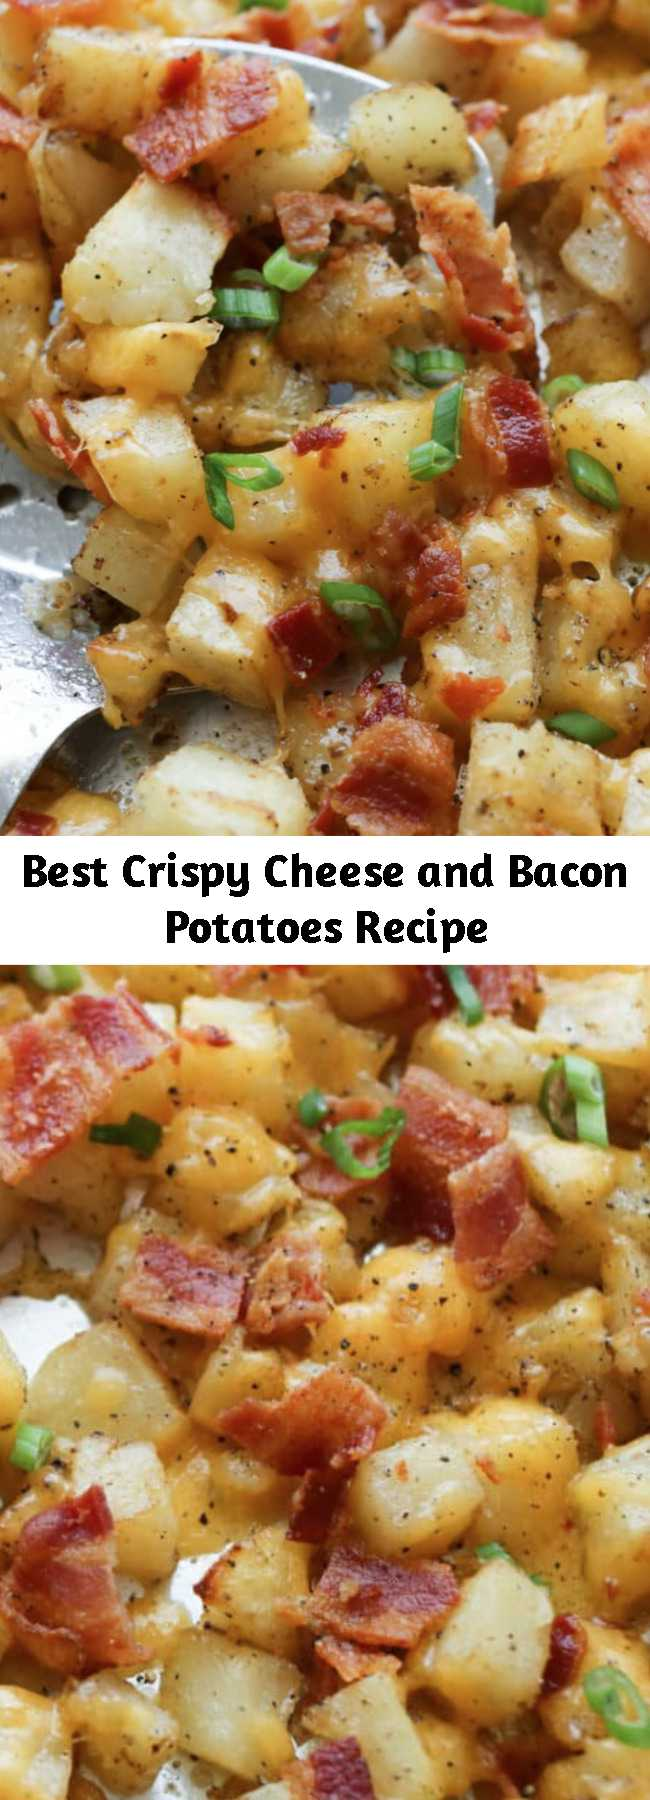 Best Crispy Cheese and Bacon Potatoes Recipe - Crispy roasted potatoes, topped with melting cheese and plenty of crisp bacon are a great side dish (or main dish!) for any meal. These really are the best ever Cheesy Potatoes! I've served them with eggs for breakfast and with herb roasted chicken for dinner.